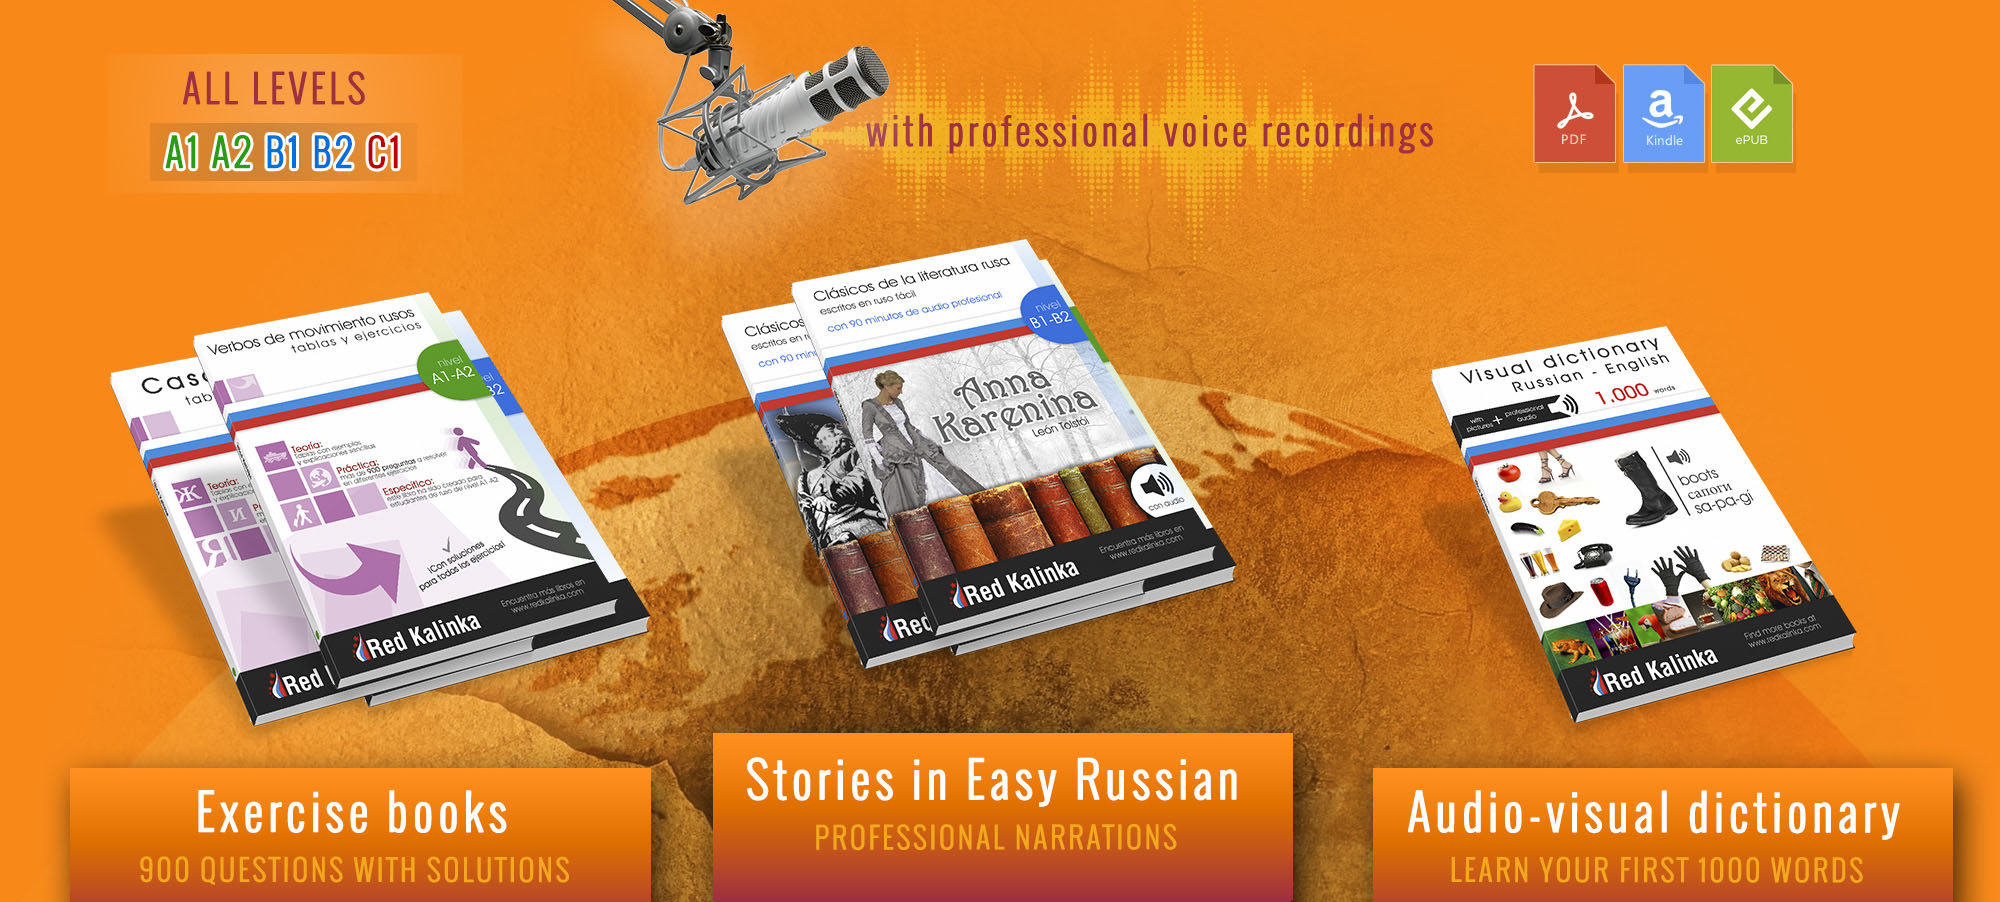 Books to learn Russian: read, listen and learn